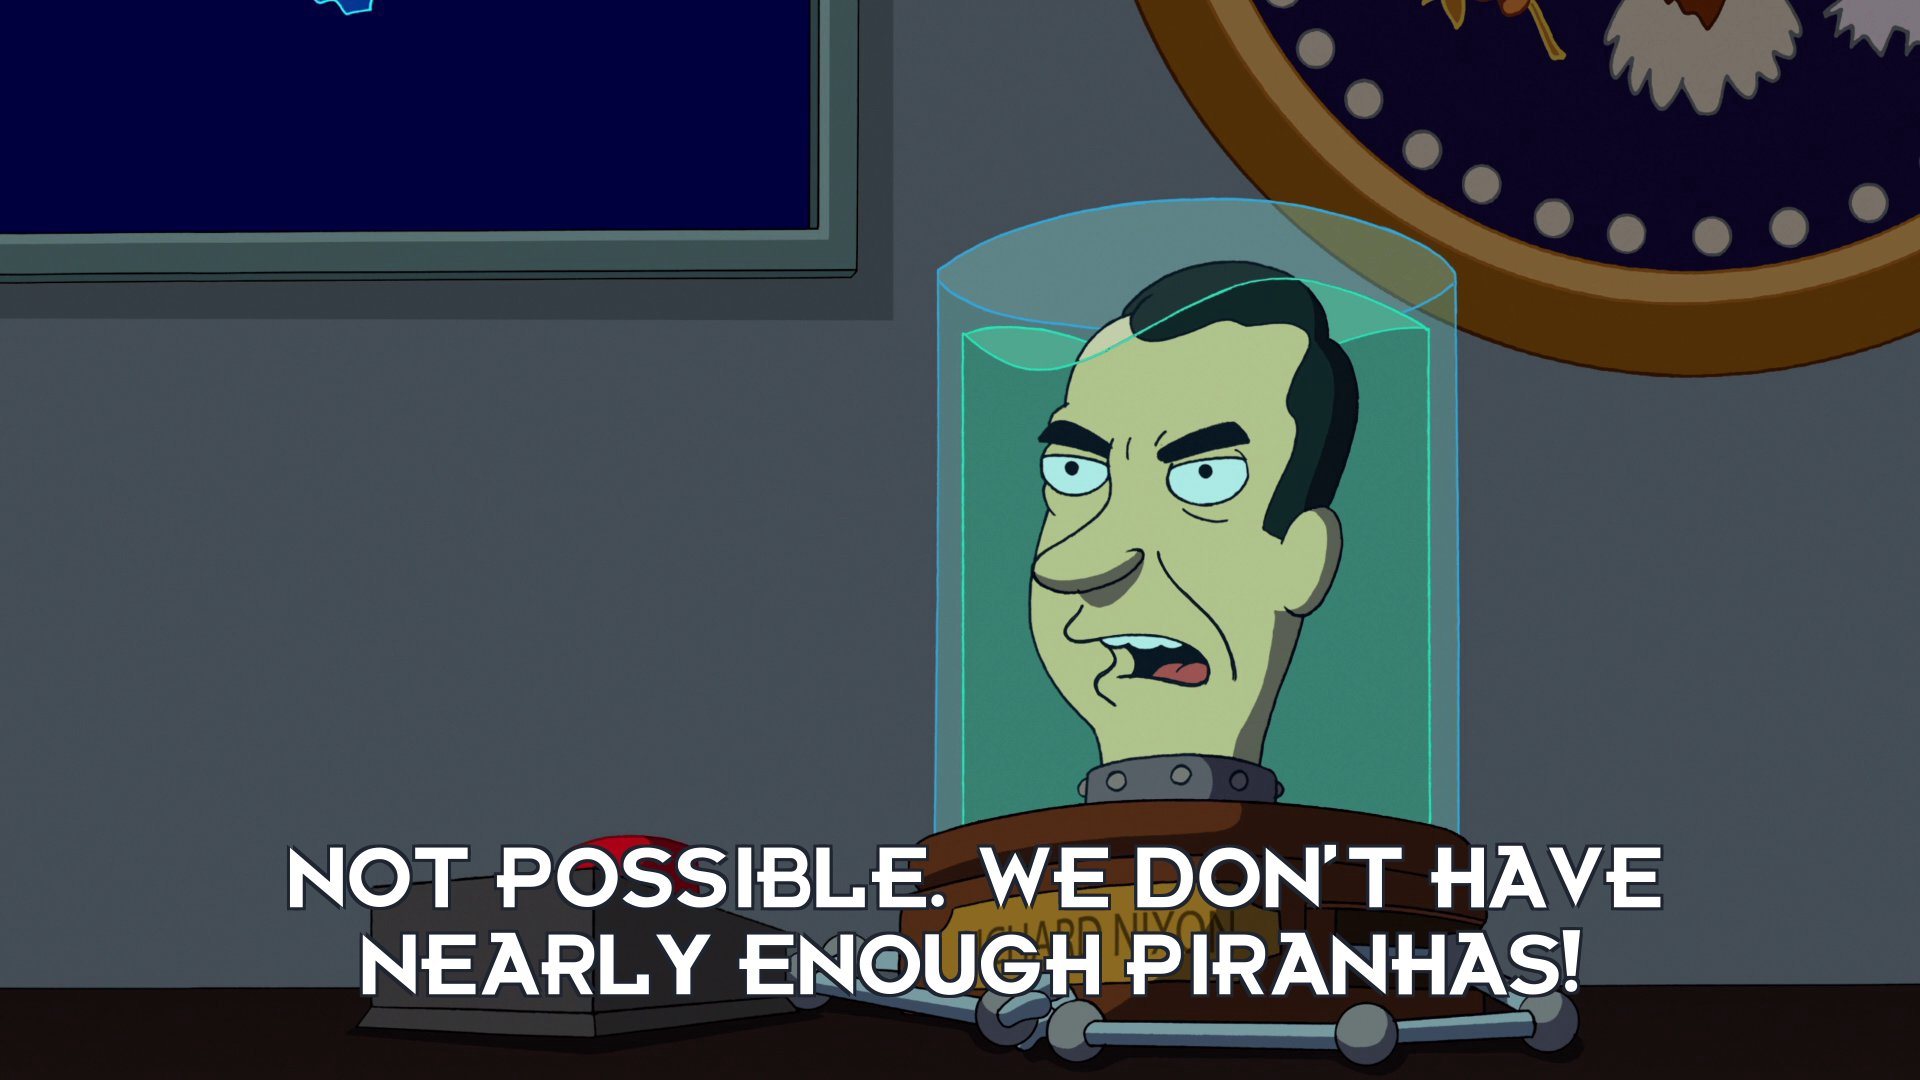 Richard Nixon's head: Not possible. We don't have nearly enough piranhas!